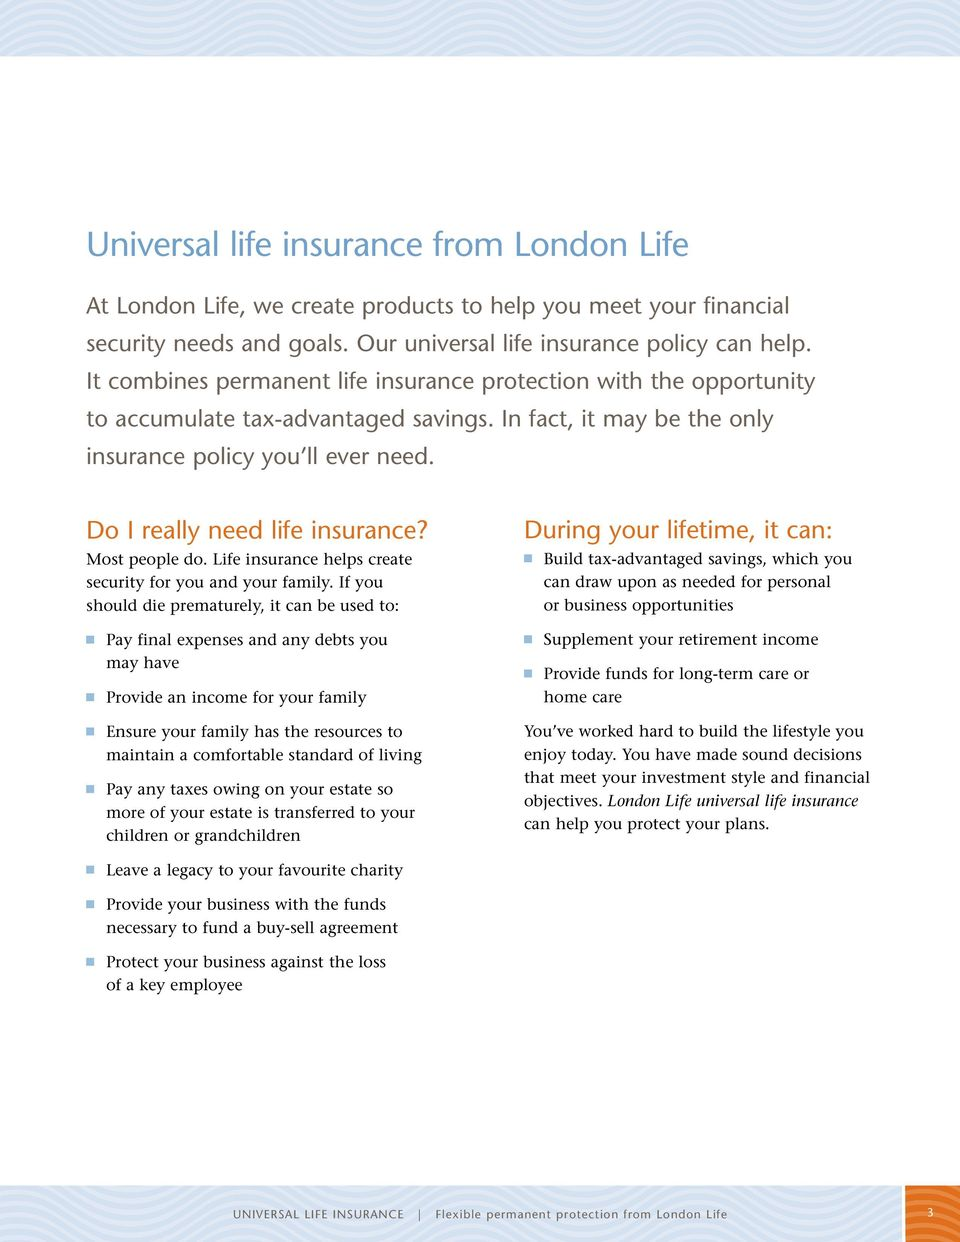 Do I really need life insurance? Most people do. Life insurance helps create security for you and your family.